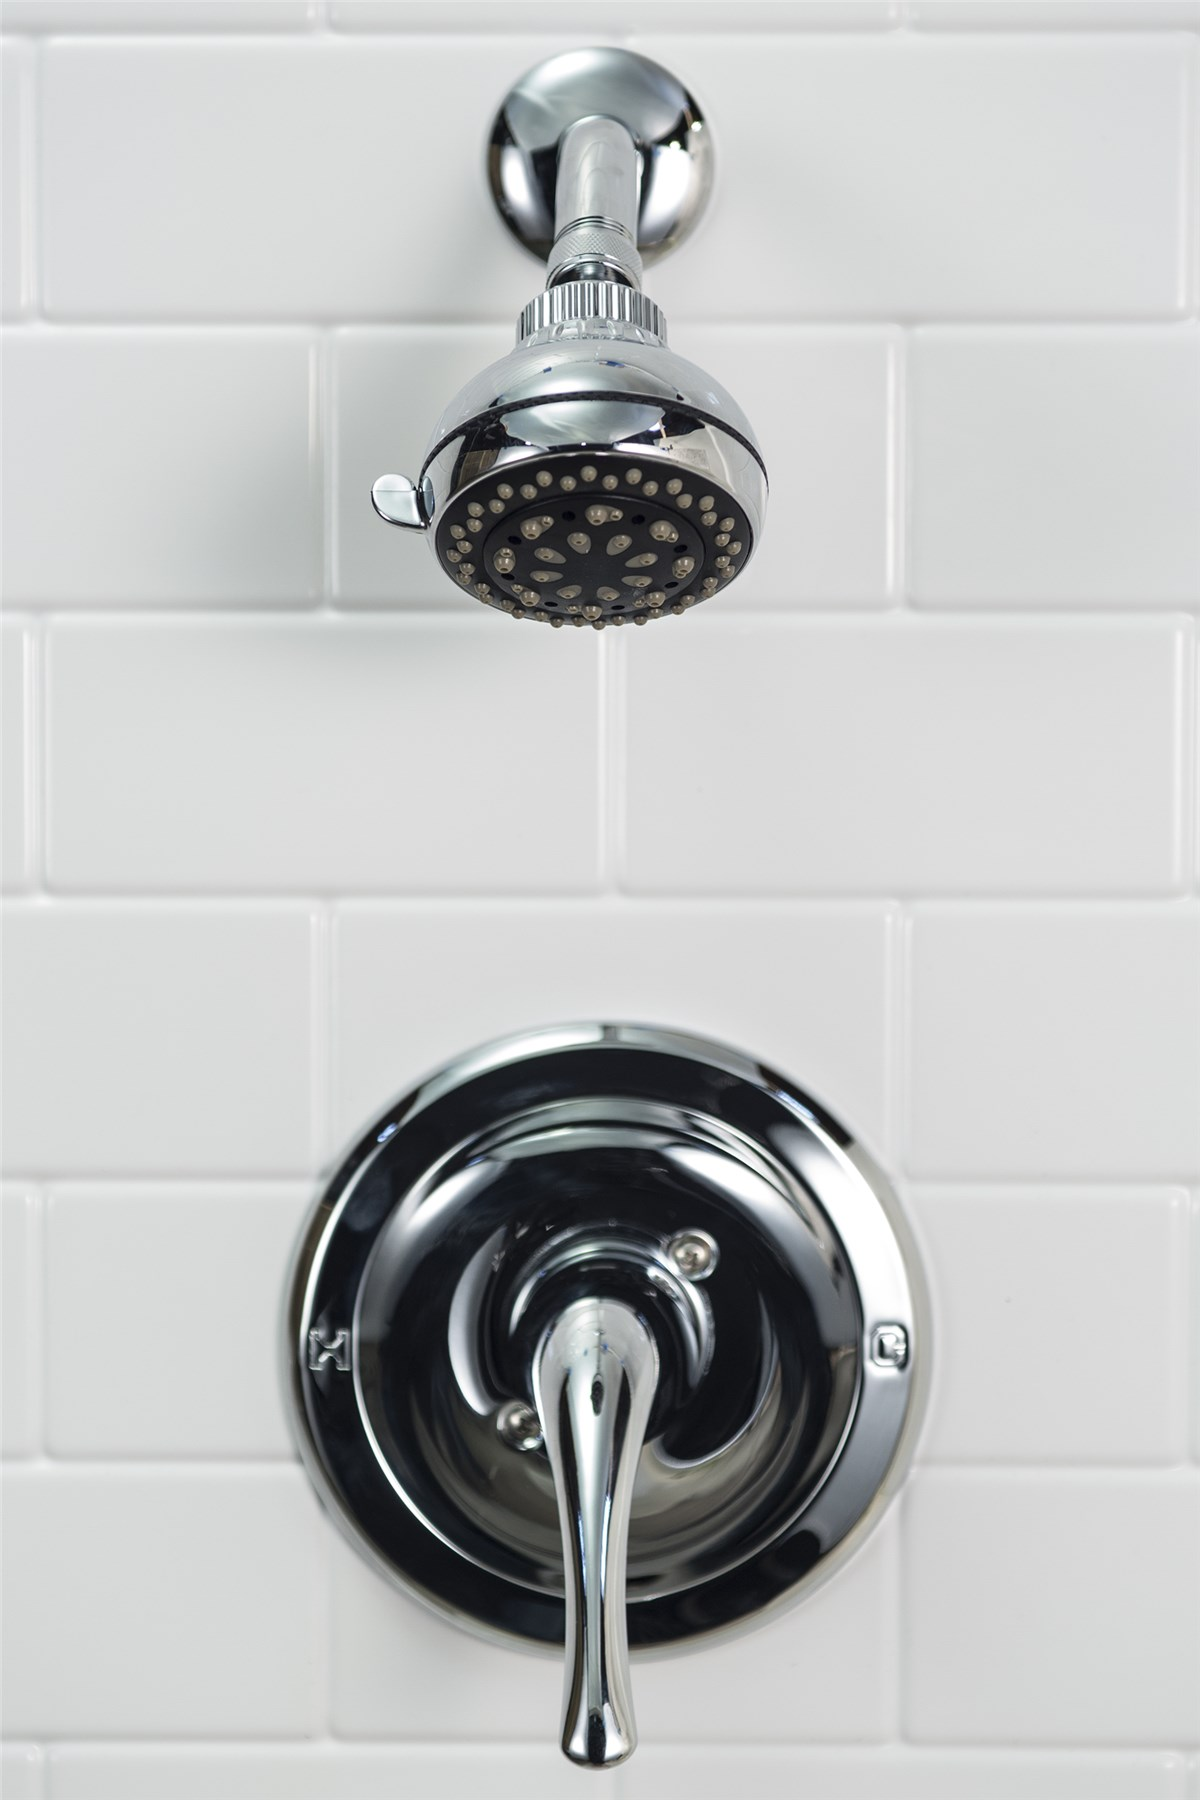 bath amp shower accessories bath remodeling accessories bath amp shower accessories bath remodeling accessories